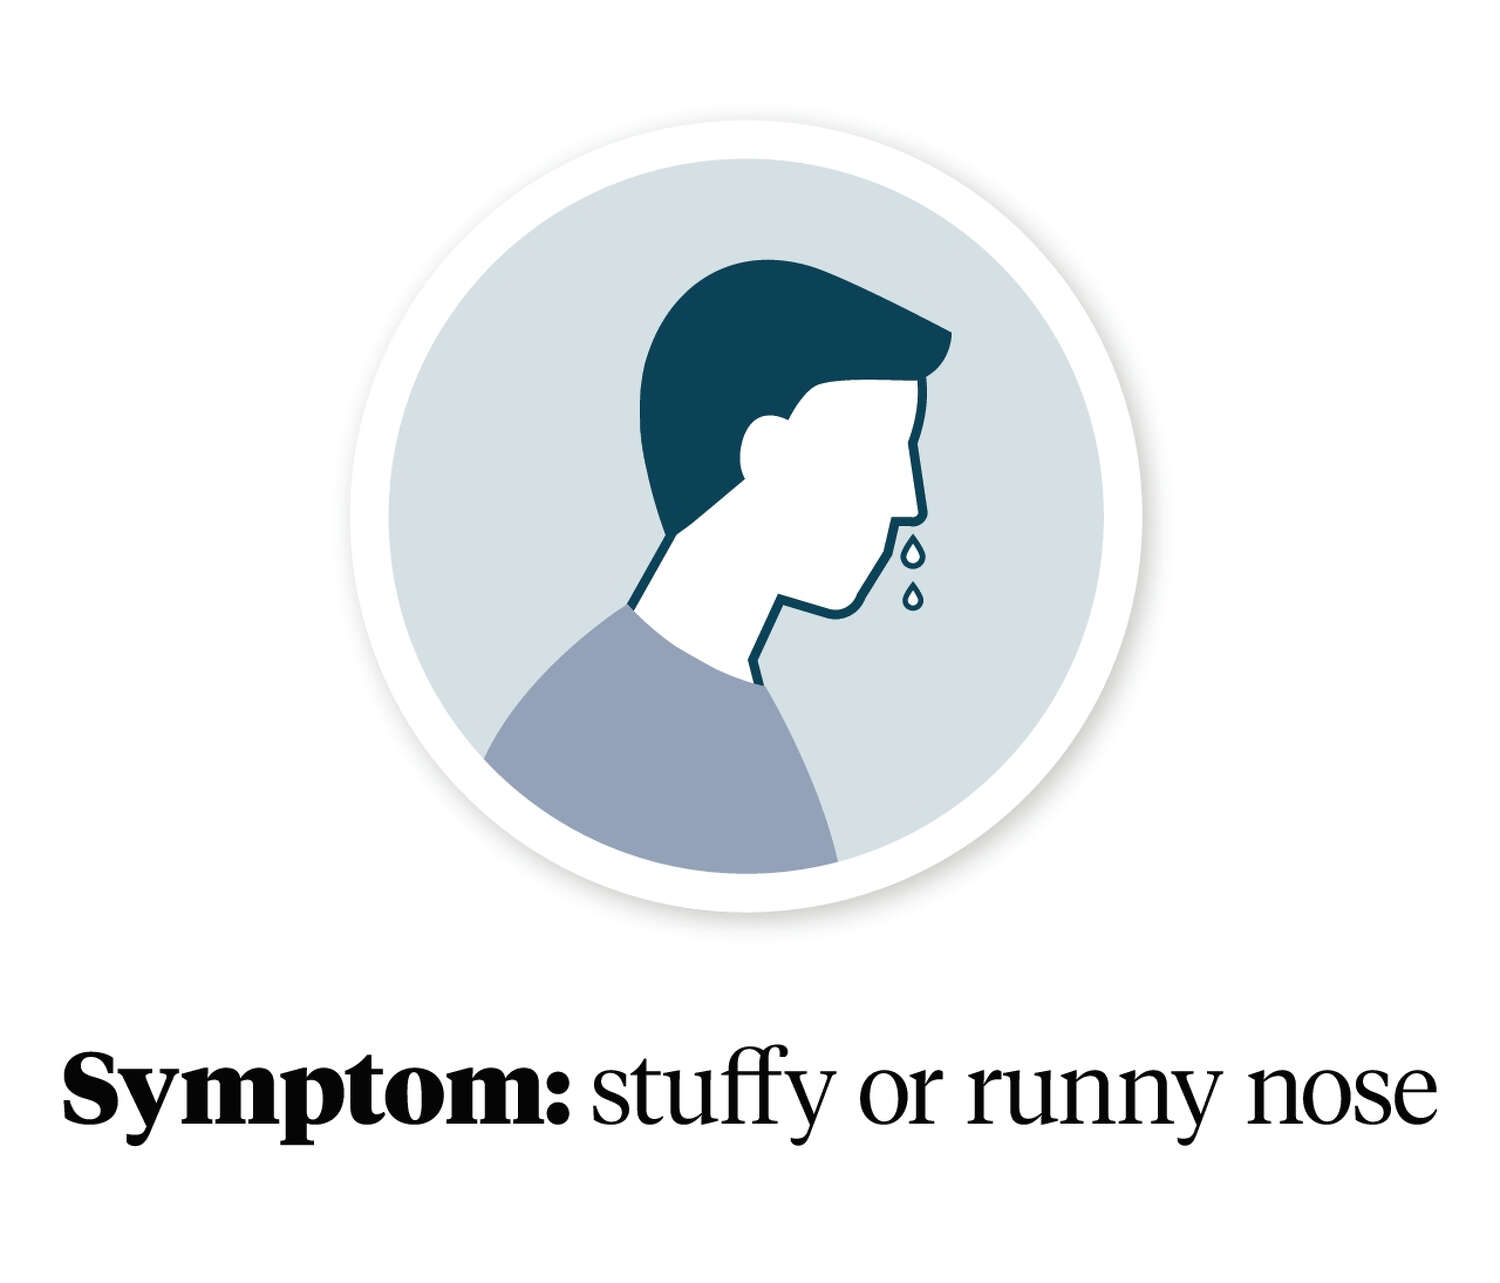 Graphic showing a person with a stuffy or runny nose